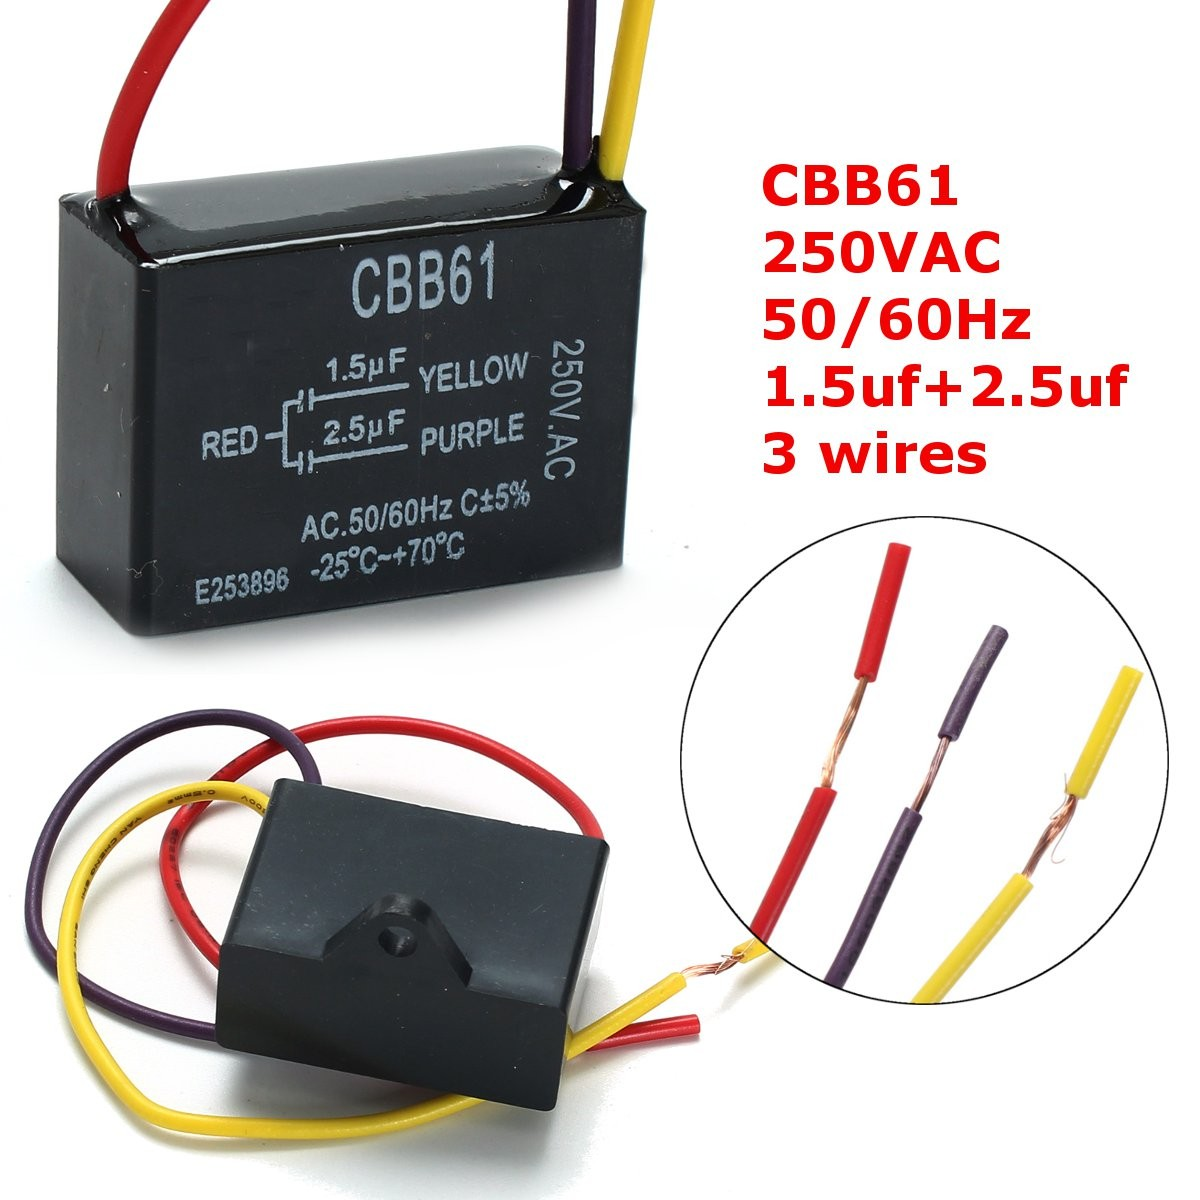 small resolution of 1pc black fan capacitor cbb61 1 5uf 2 5uf 3 wires ac 250v 50 60hz capacitor for ceiling fan in capacitors from electronic components supplies on